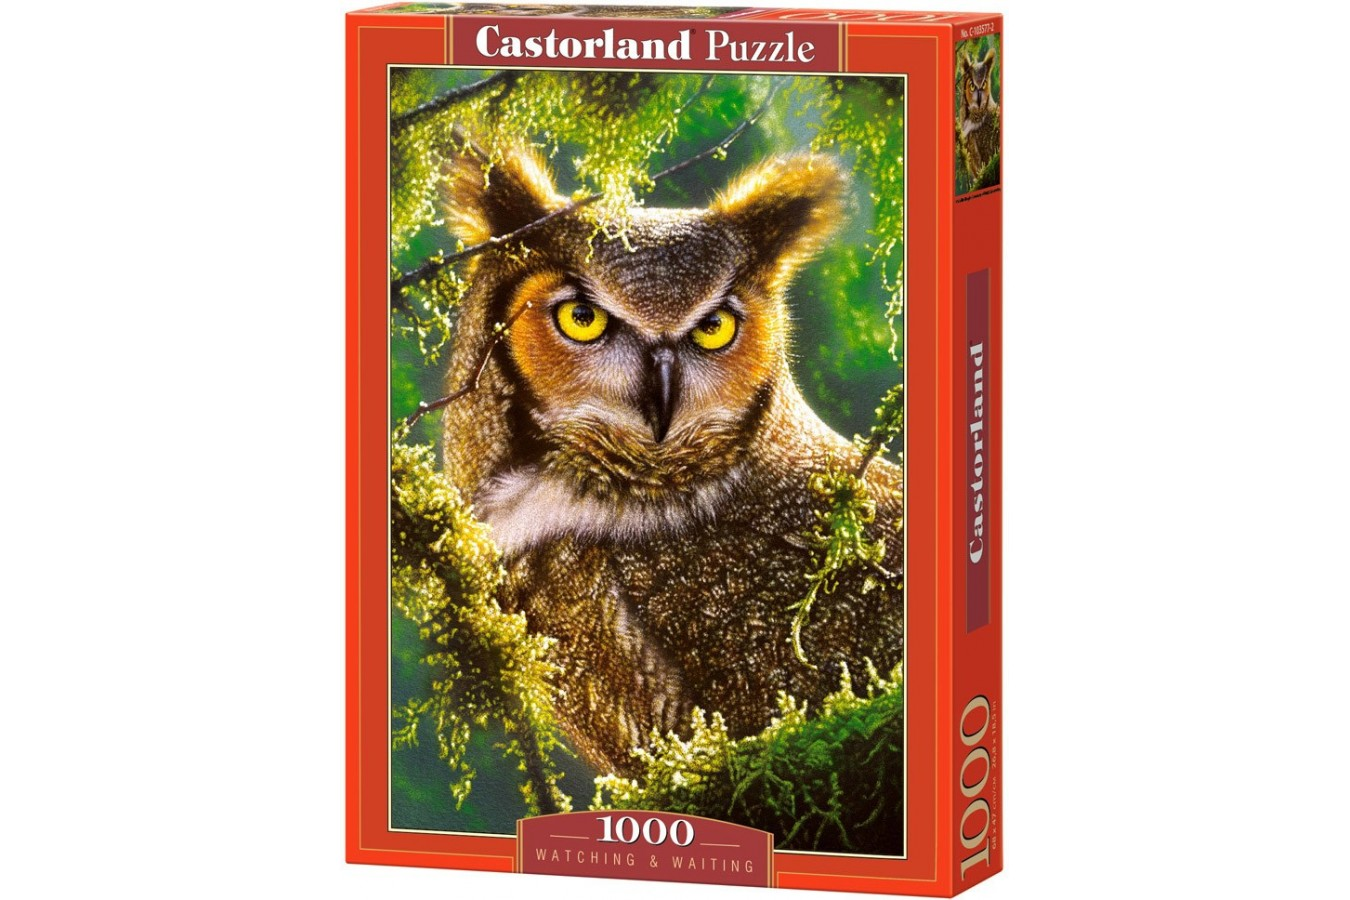 Puzzle Castorland - Watching & Waiting, 1000 piese